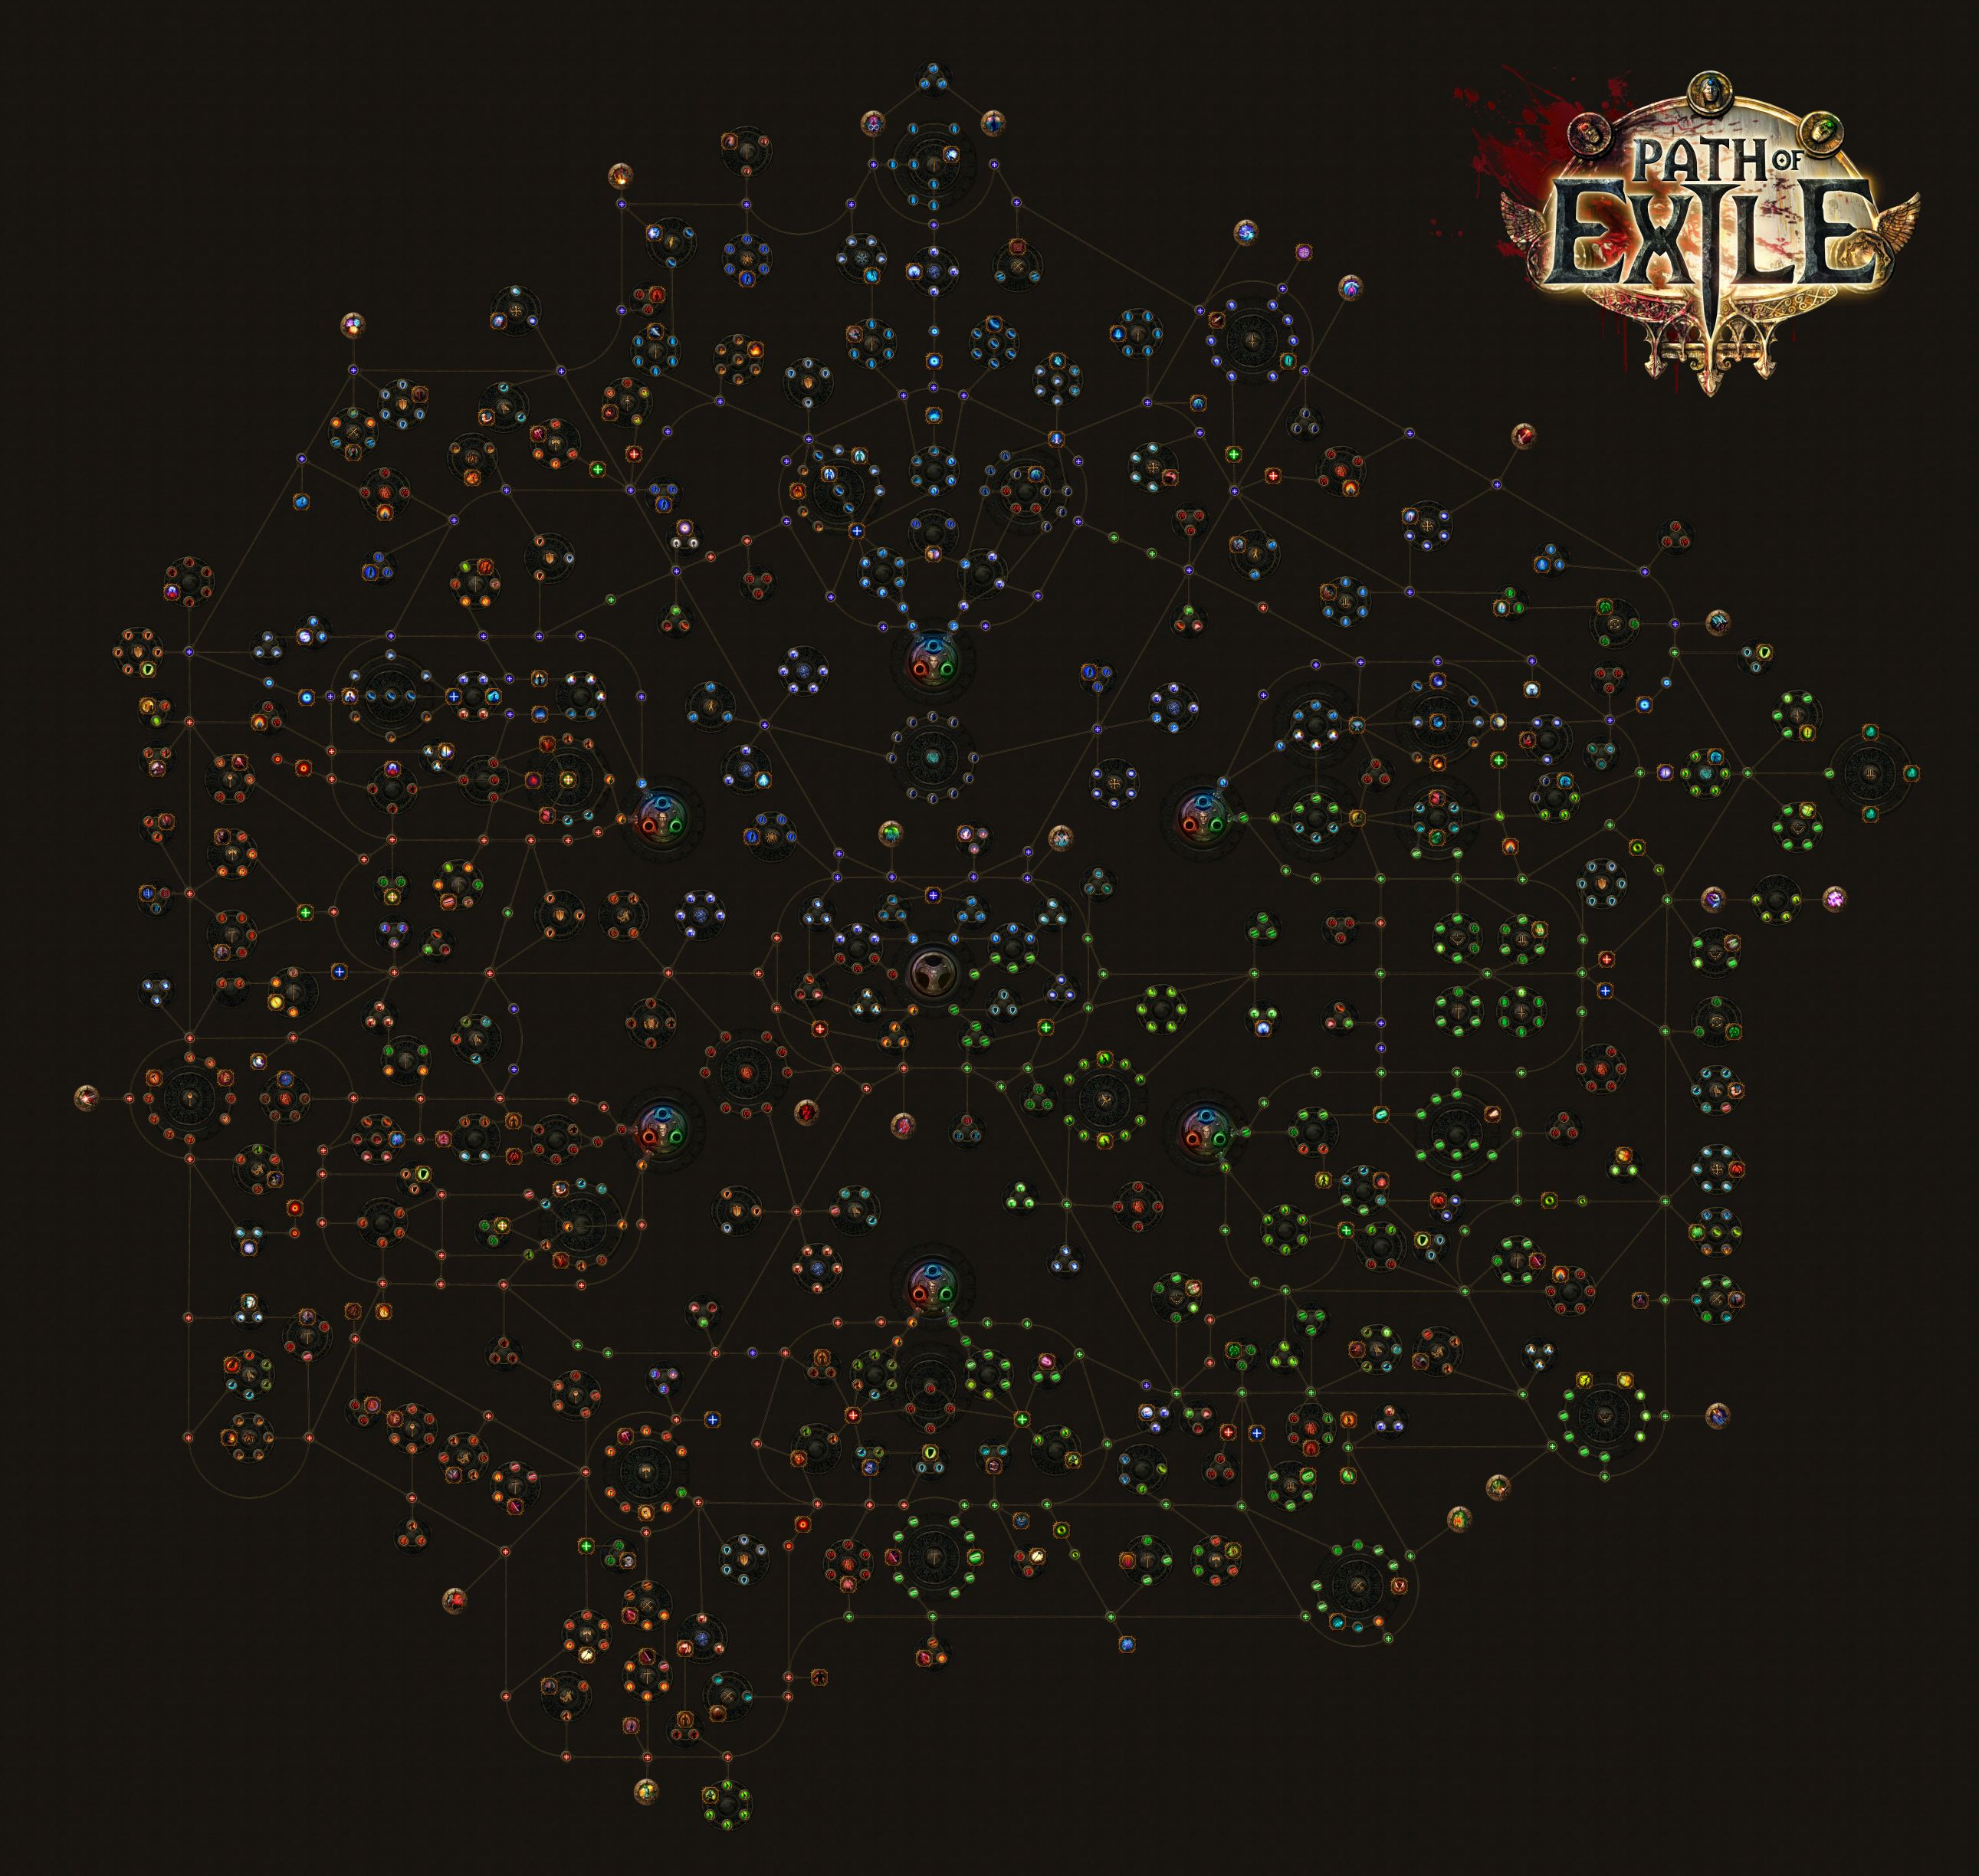 Path of Exile Skill Wheel